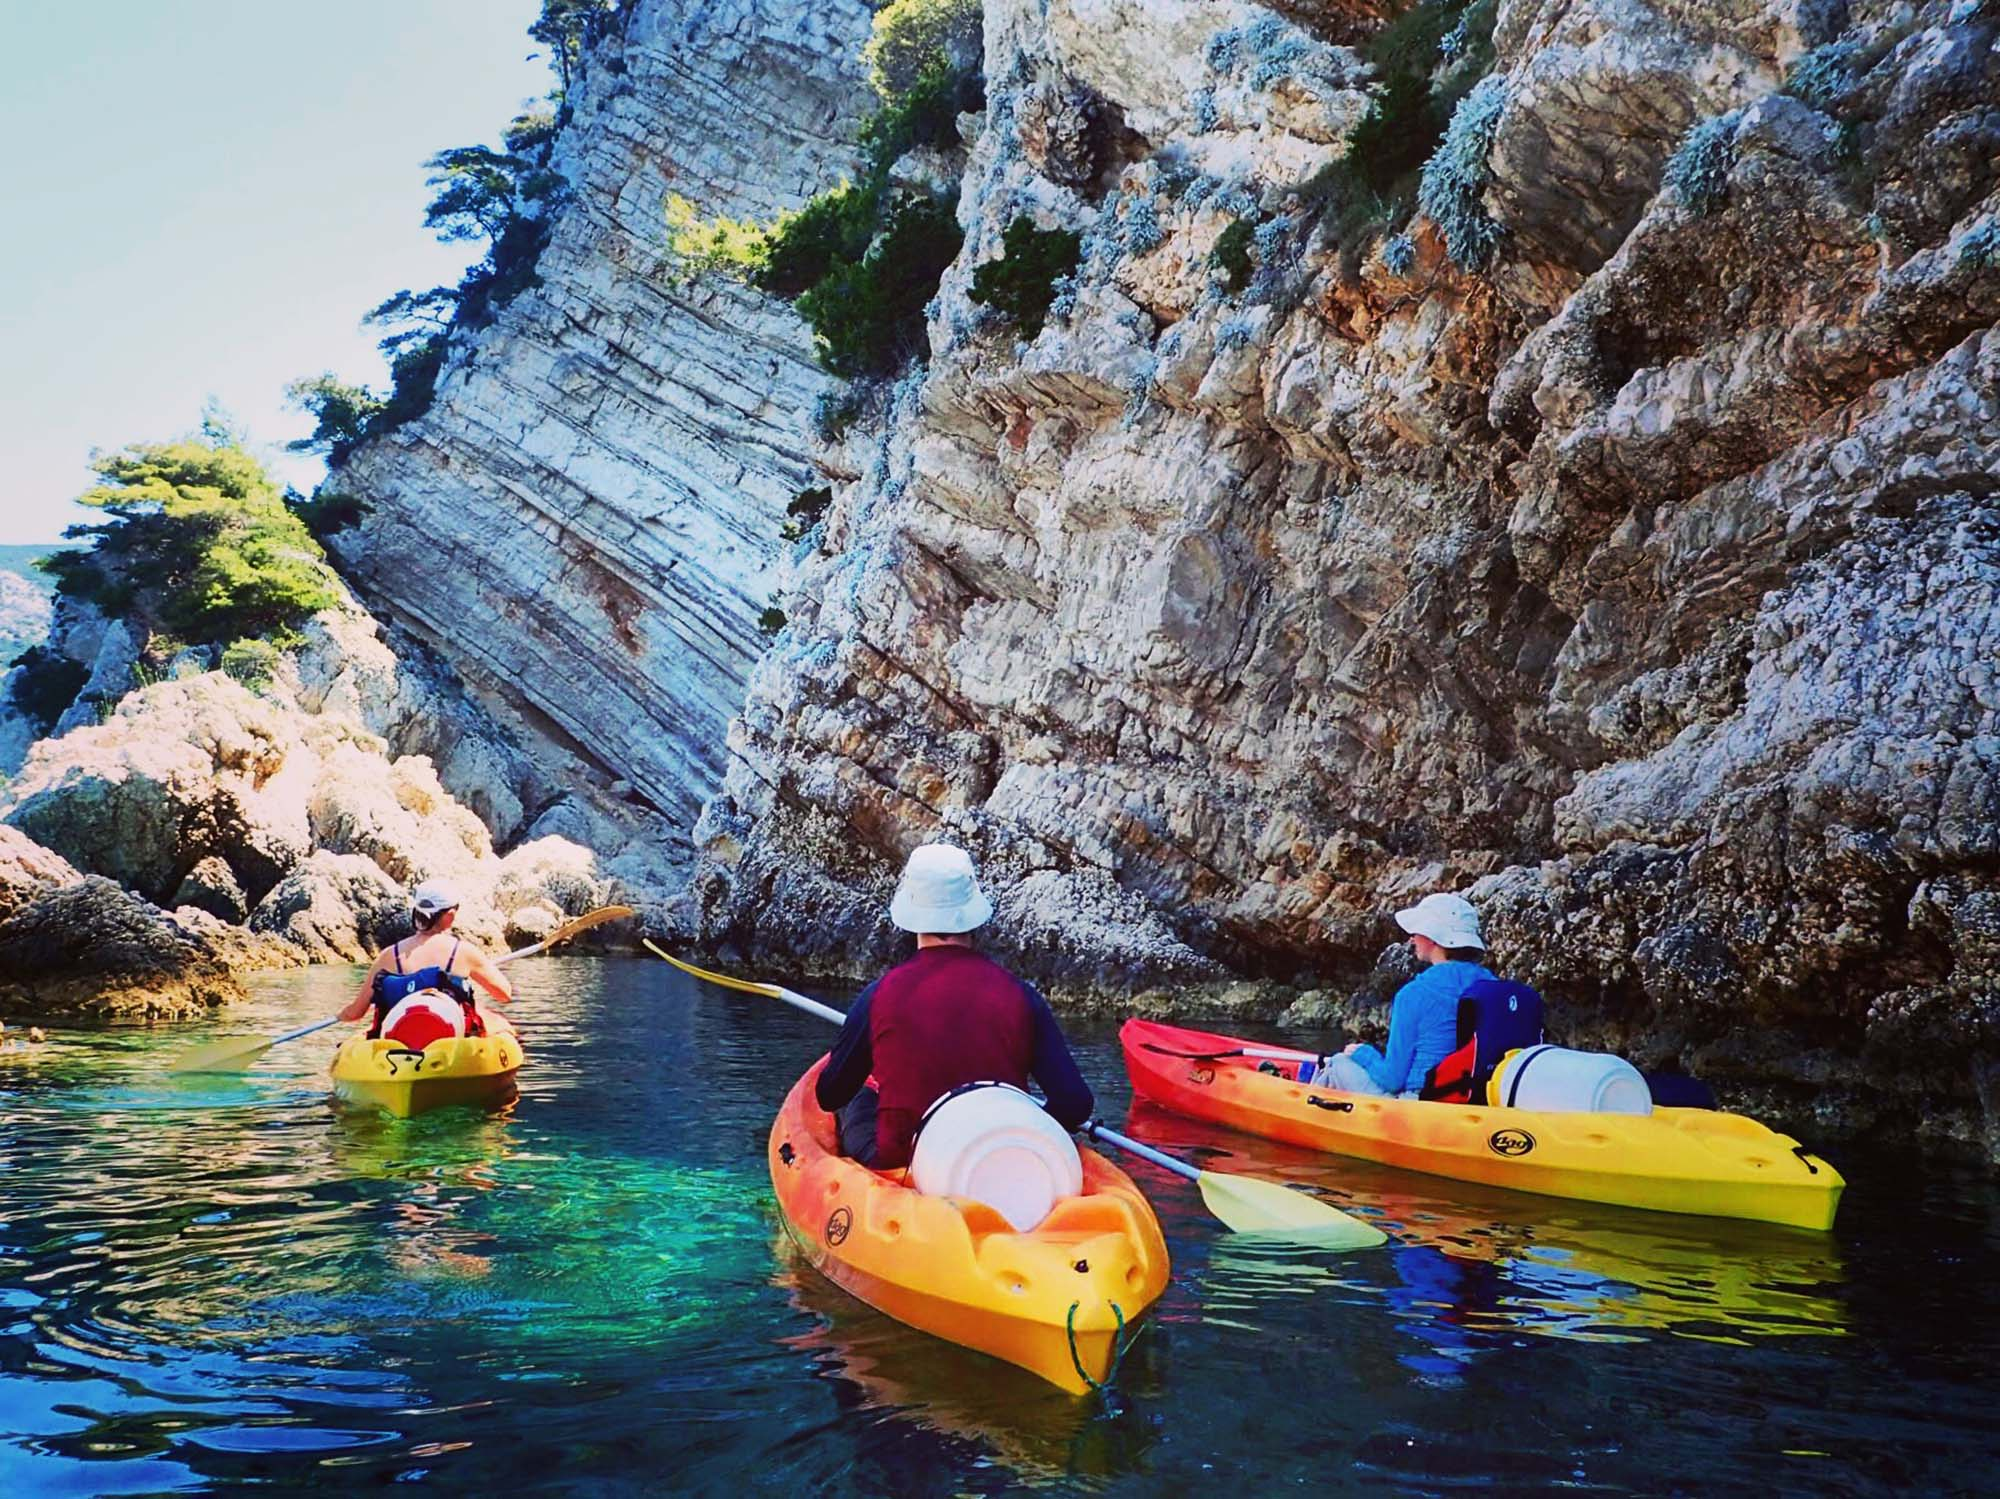 Kayak adventure in Komiža